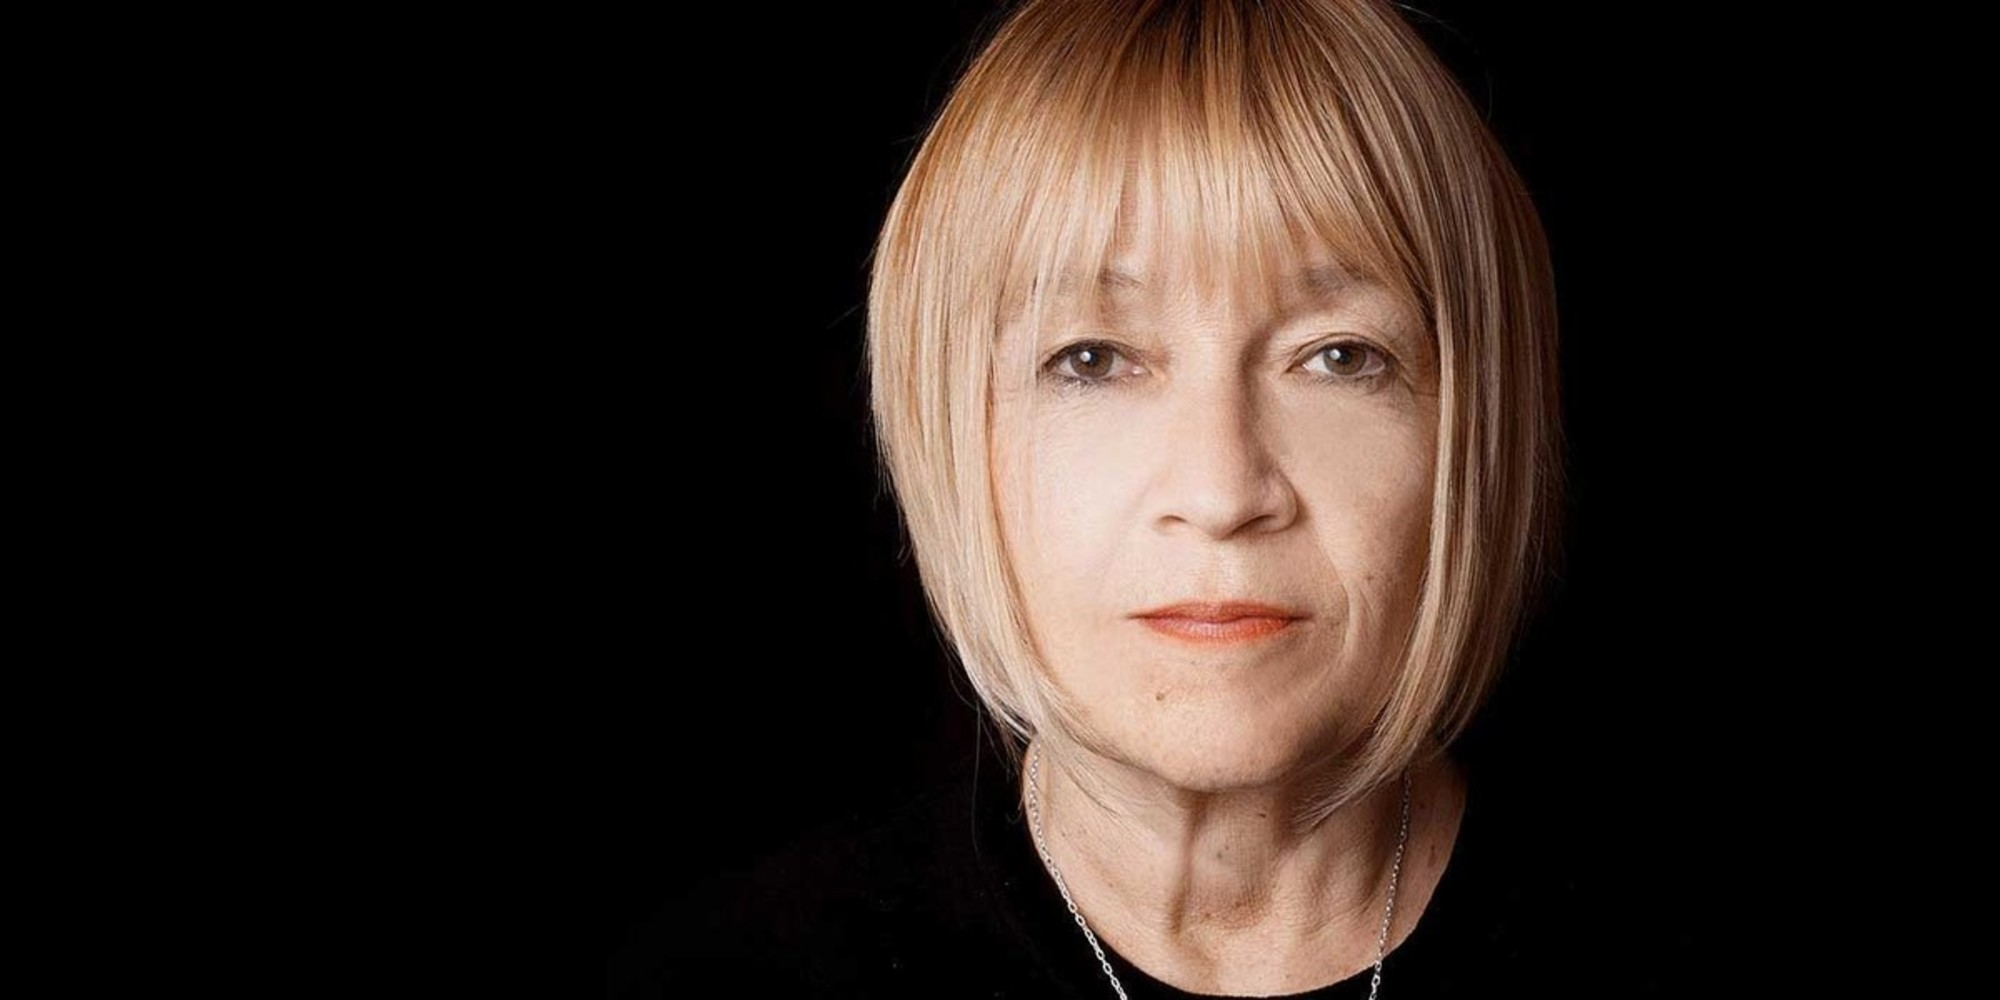 cindy g  A  llop   A graduate of Oxford University, Cindy Gallop is an advertising executive and founder of  Make Love, Not Porn . Her revolutionary outlook on pornography and human sexuality was highlighted in the 2009 TED conference. You can follow her on  Twitter , or check out her official  website .